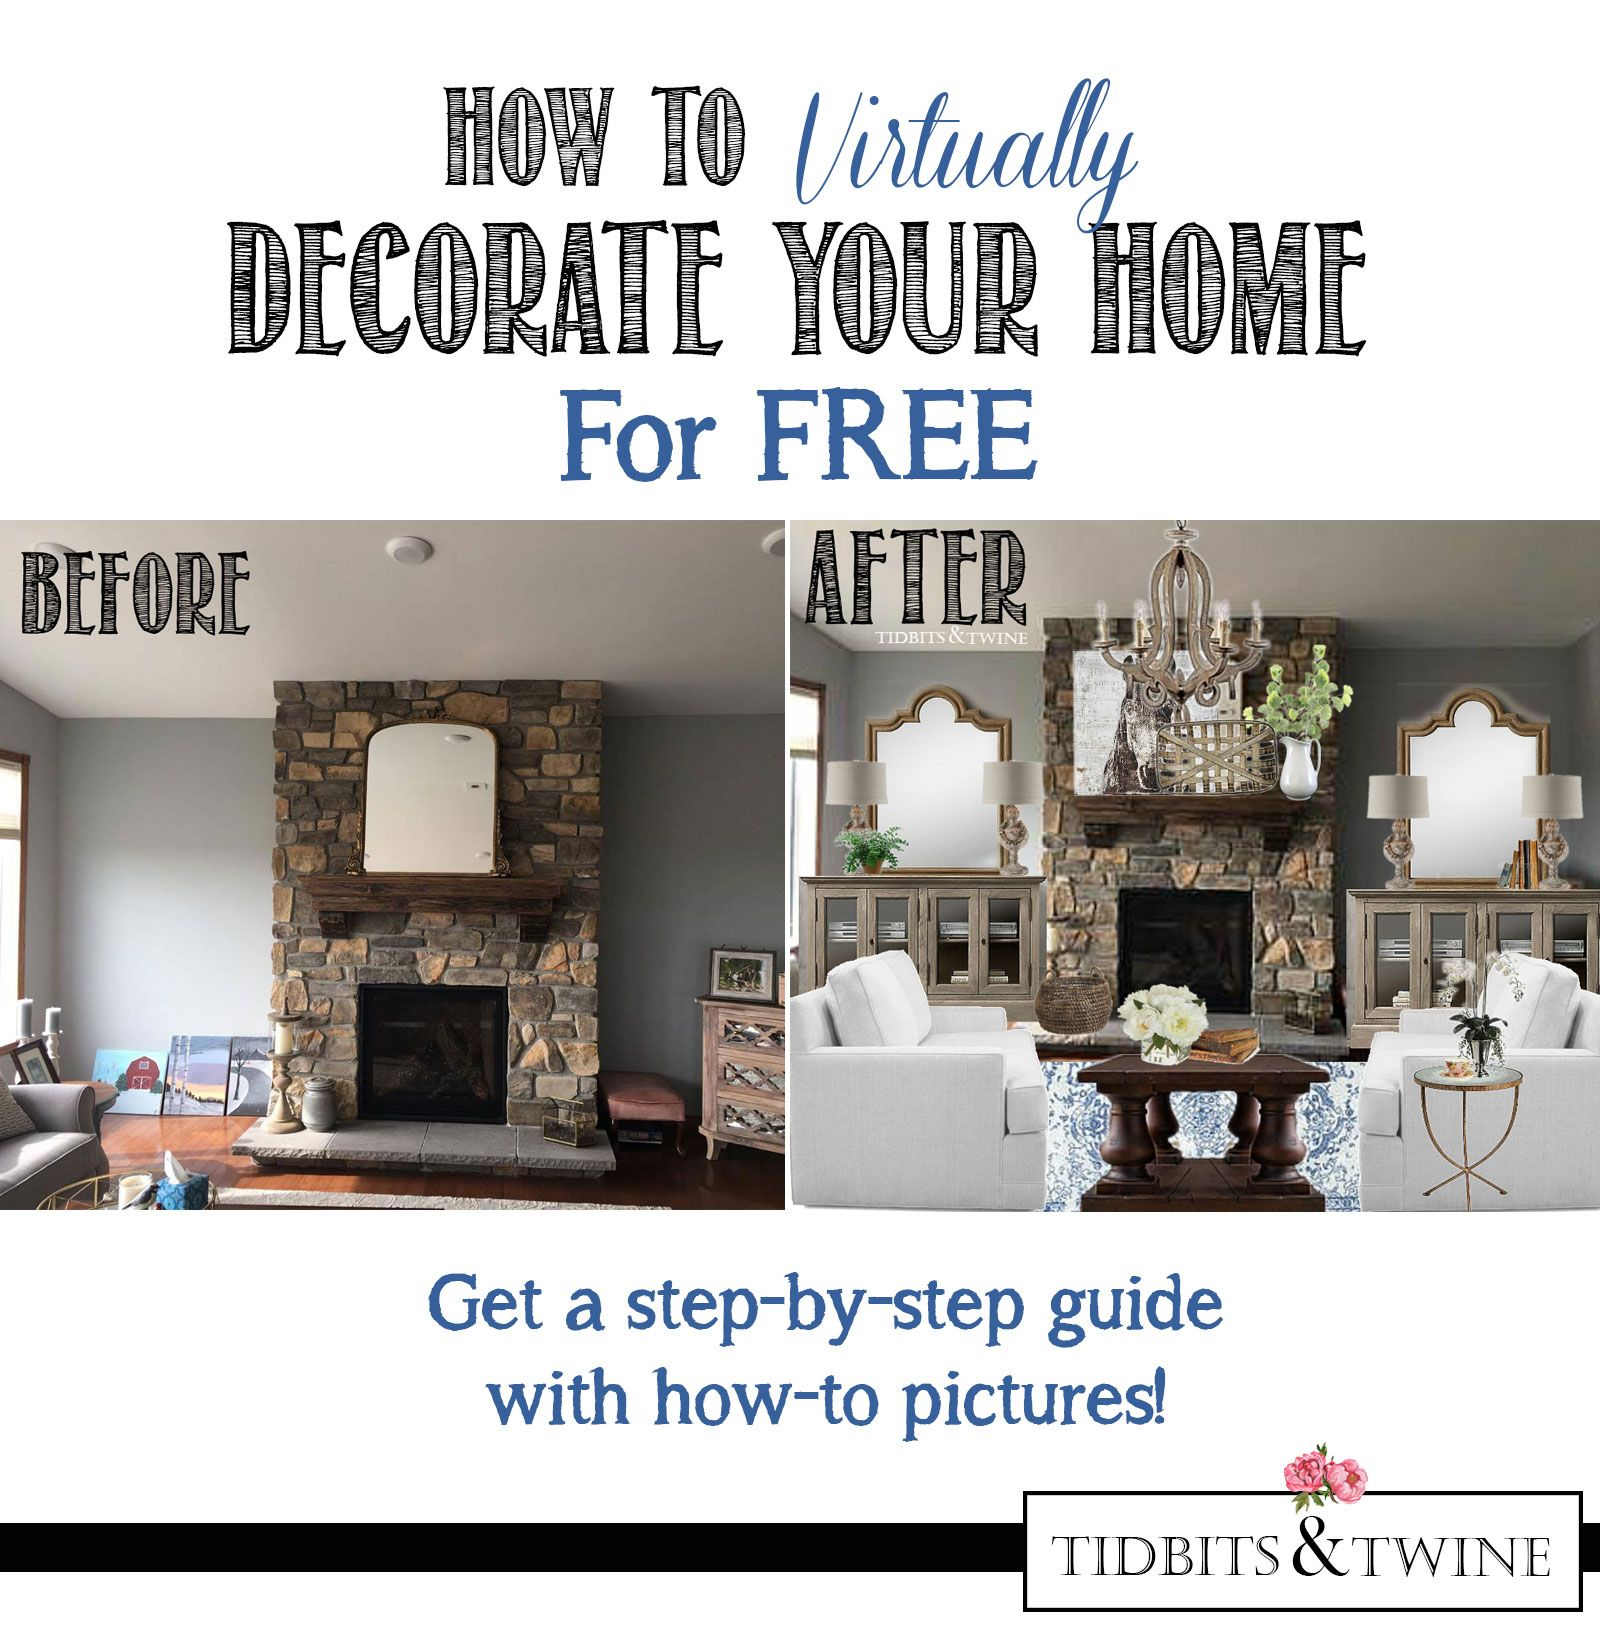 how to virtually decorate your home for free